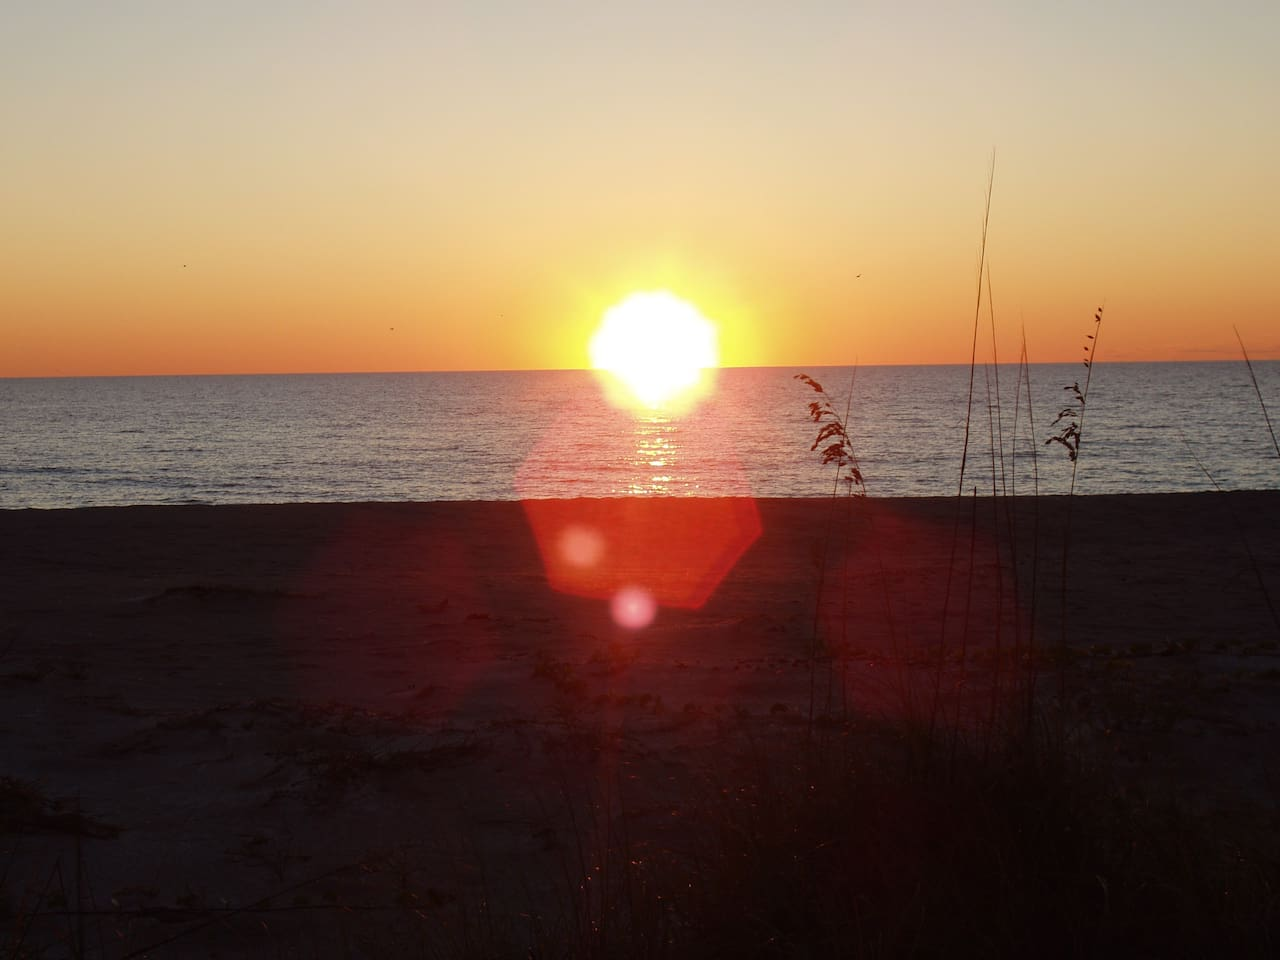 Sunsets on the beach - 5 minutes away!